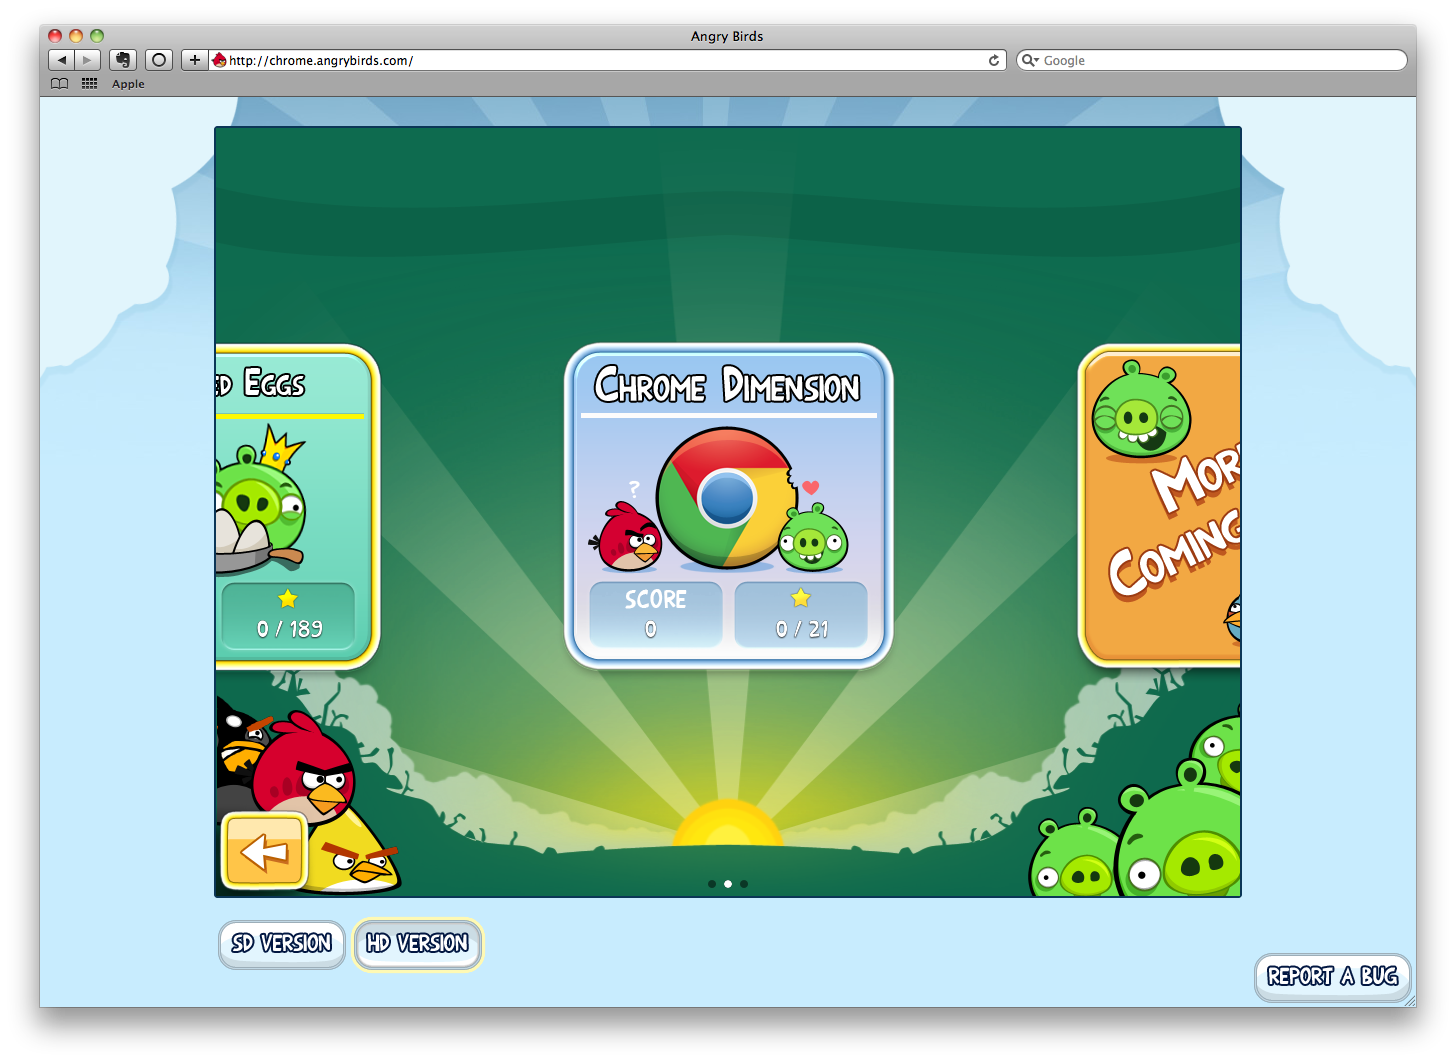 You Don't Need Chrome to Play Angry Birds for Free